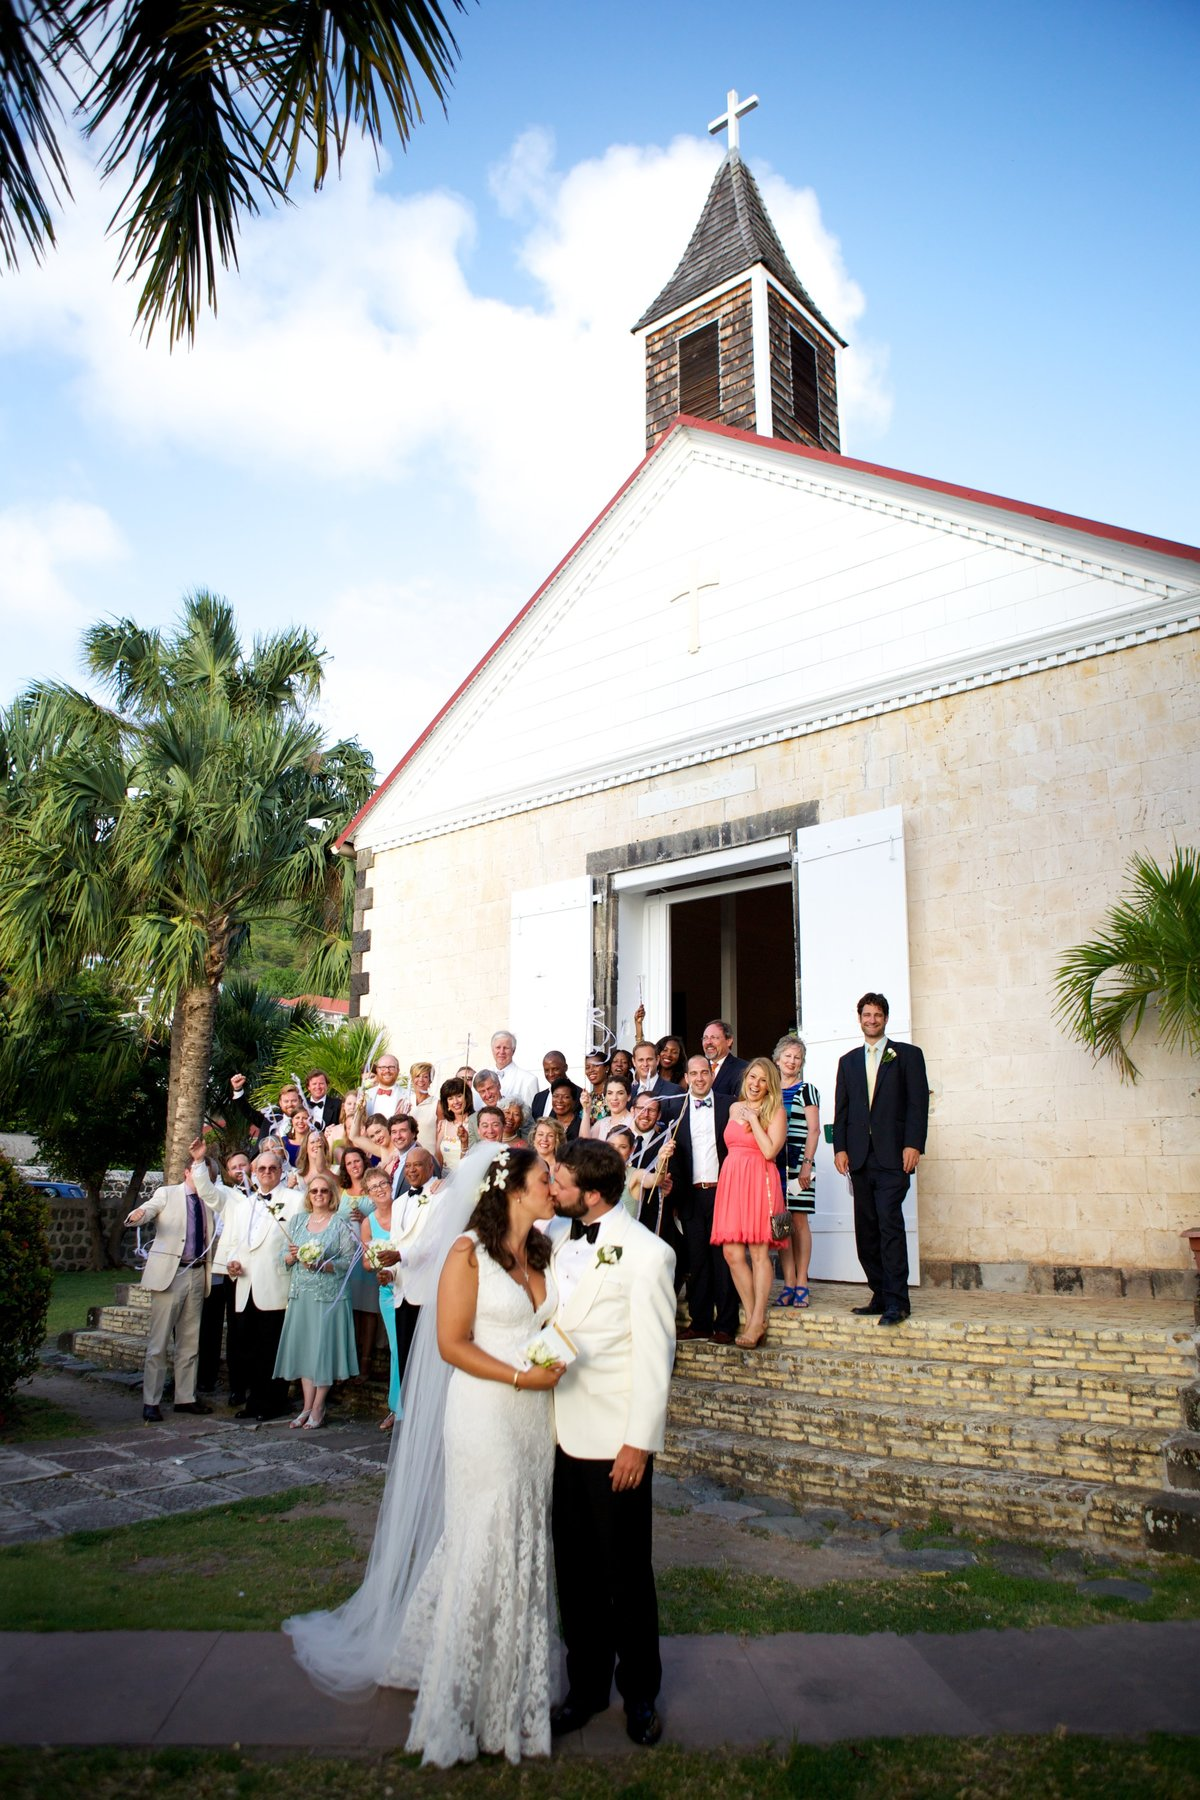 Arden_Photography_Saint_Bart_Destination_WeddingACP  635451